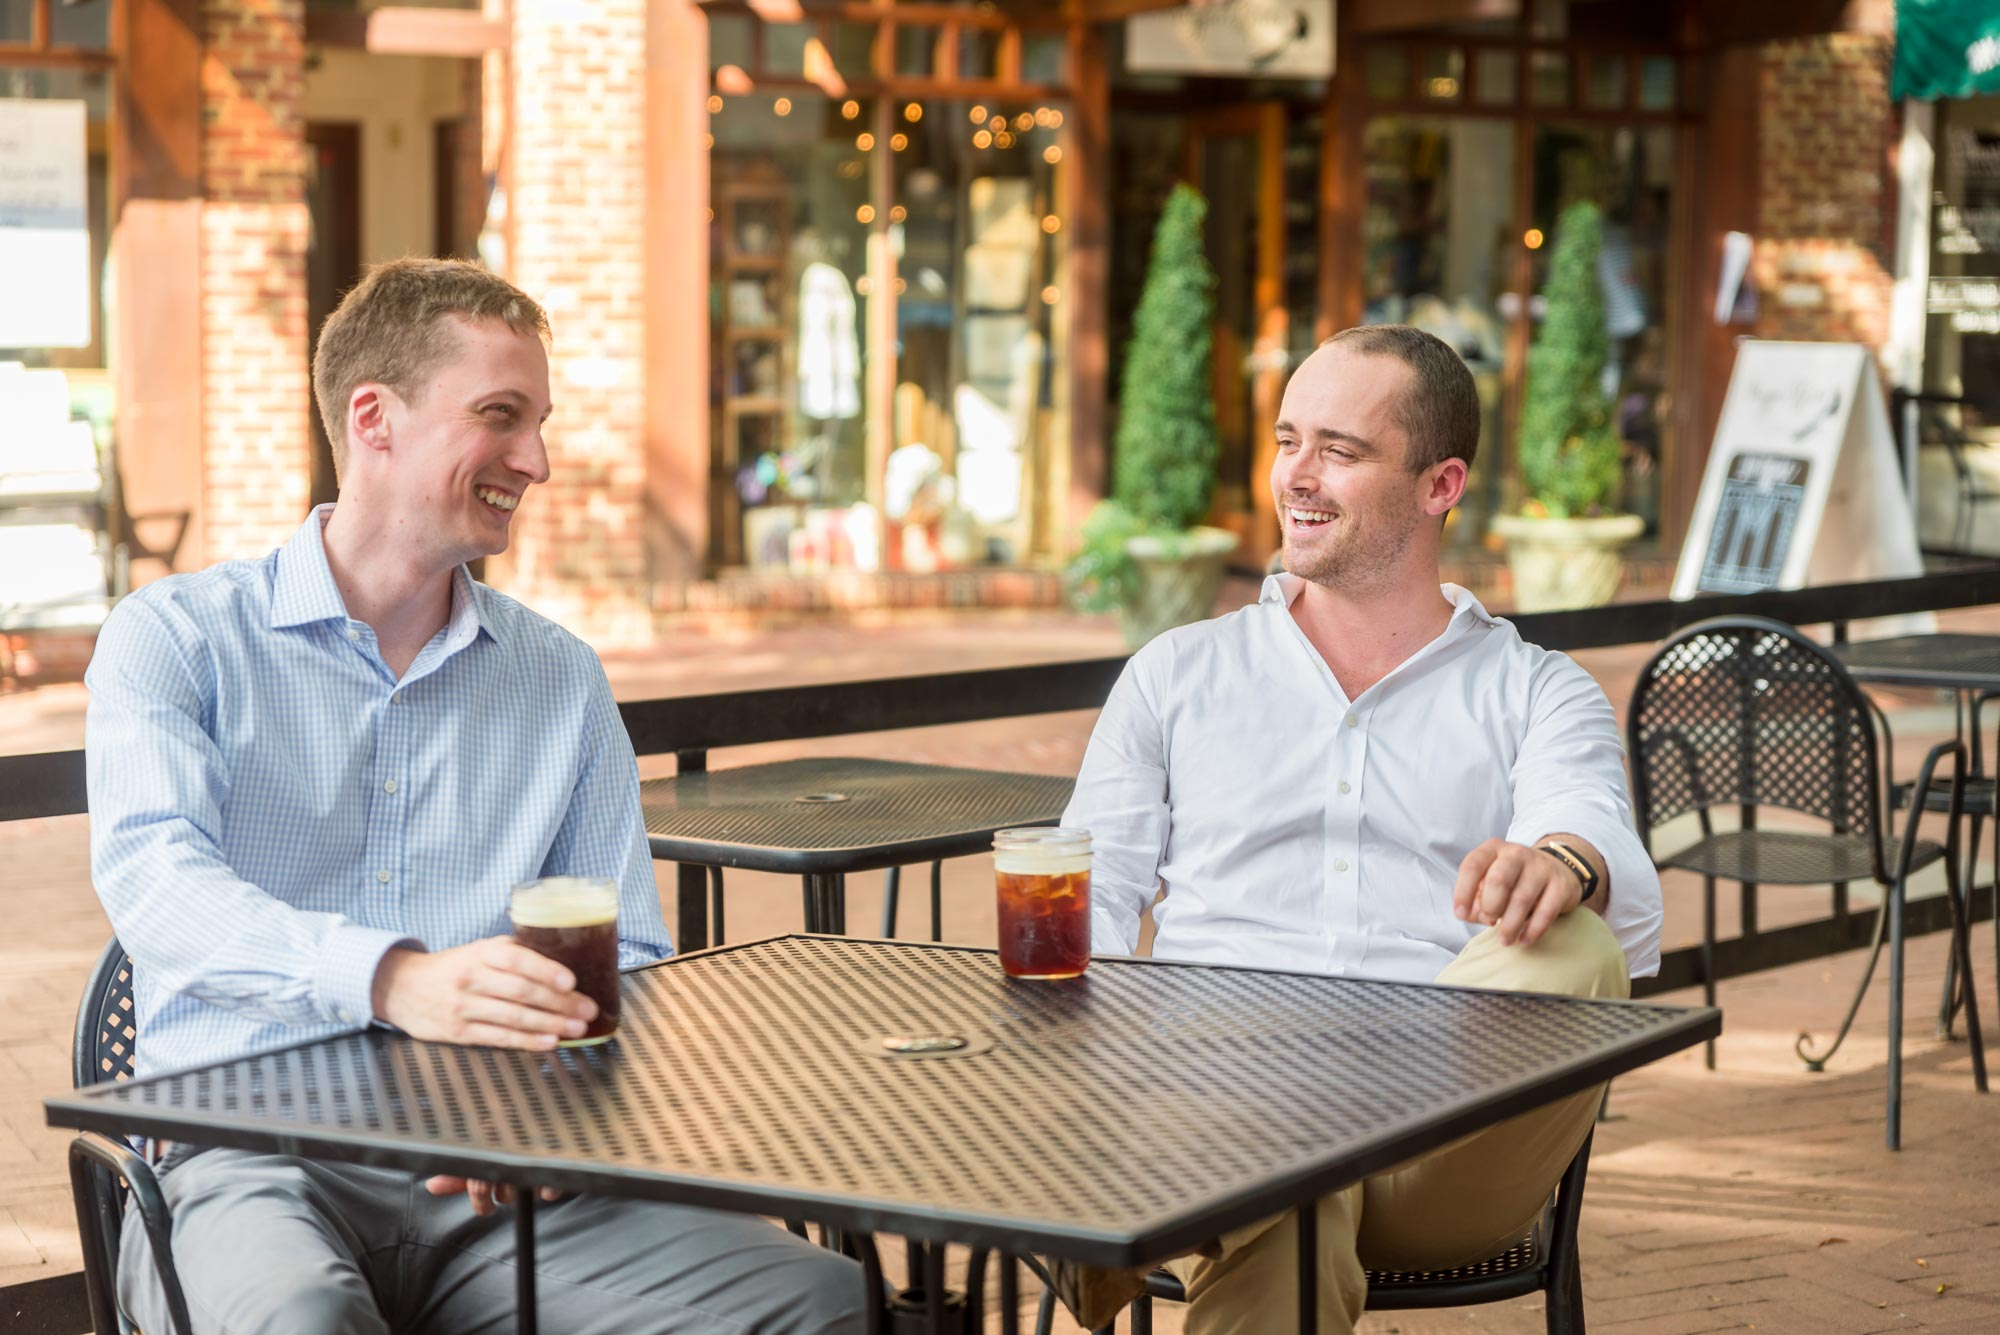 Darden student Whit Hunter, right, founded the nonprofit fundraising platform BetterWorld with fellow UVA alums Ben Yobp, left, and Hunter's brother, Colin Hunter. (Hunter and Sarah Photography)